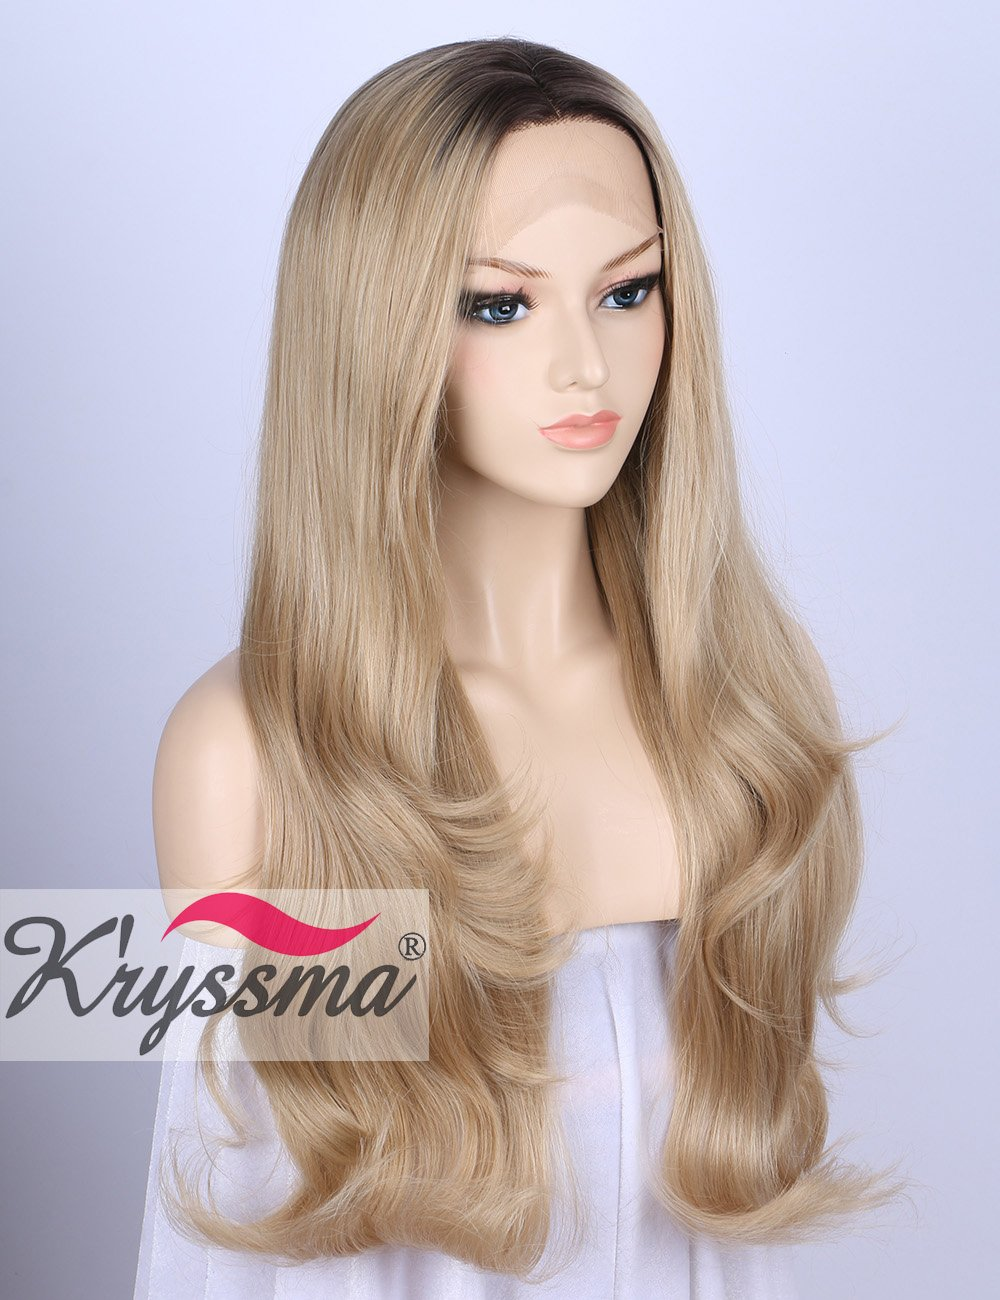 K'ryssma Ombre Blonde Synthetic Lace Front Wigs for Women Natural Looking Glueless Long Wavy 2 Tones Dark Roots to Blonde Wig Heat Resistant 24 Inches (E0204) K' ryssma